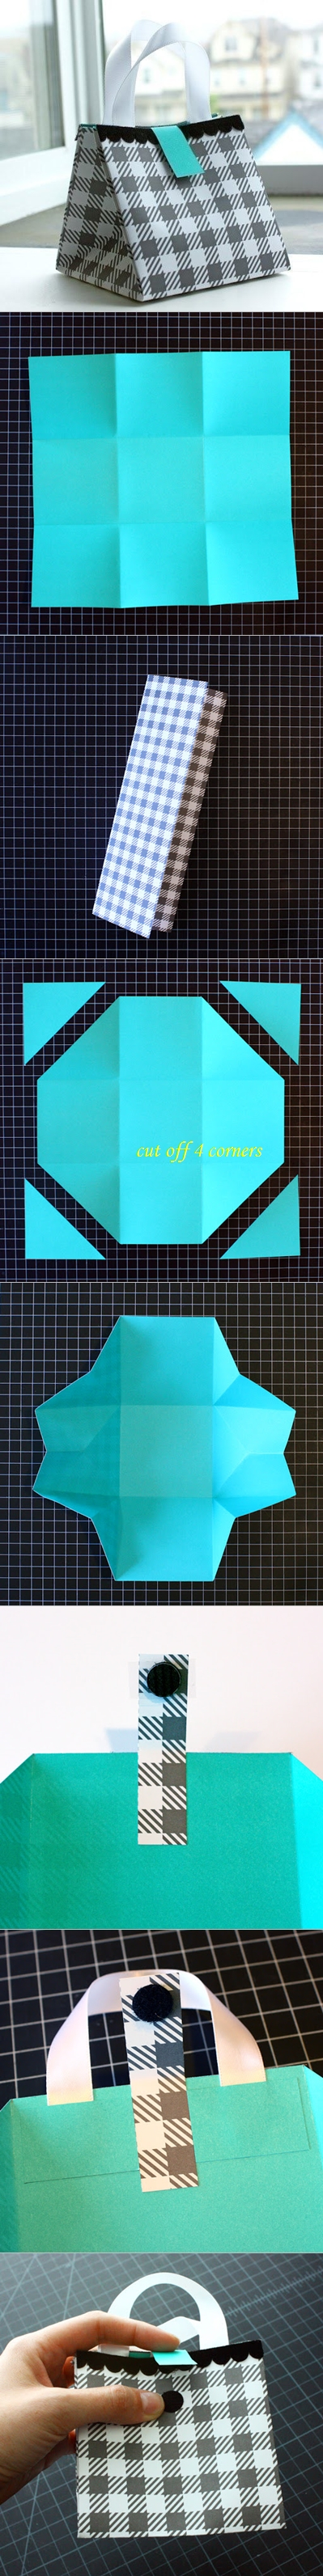 Diy-Paper-Bag tutorial